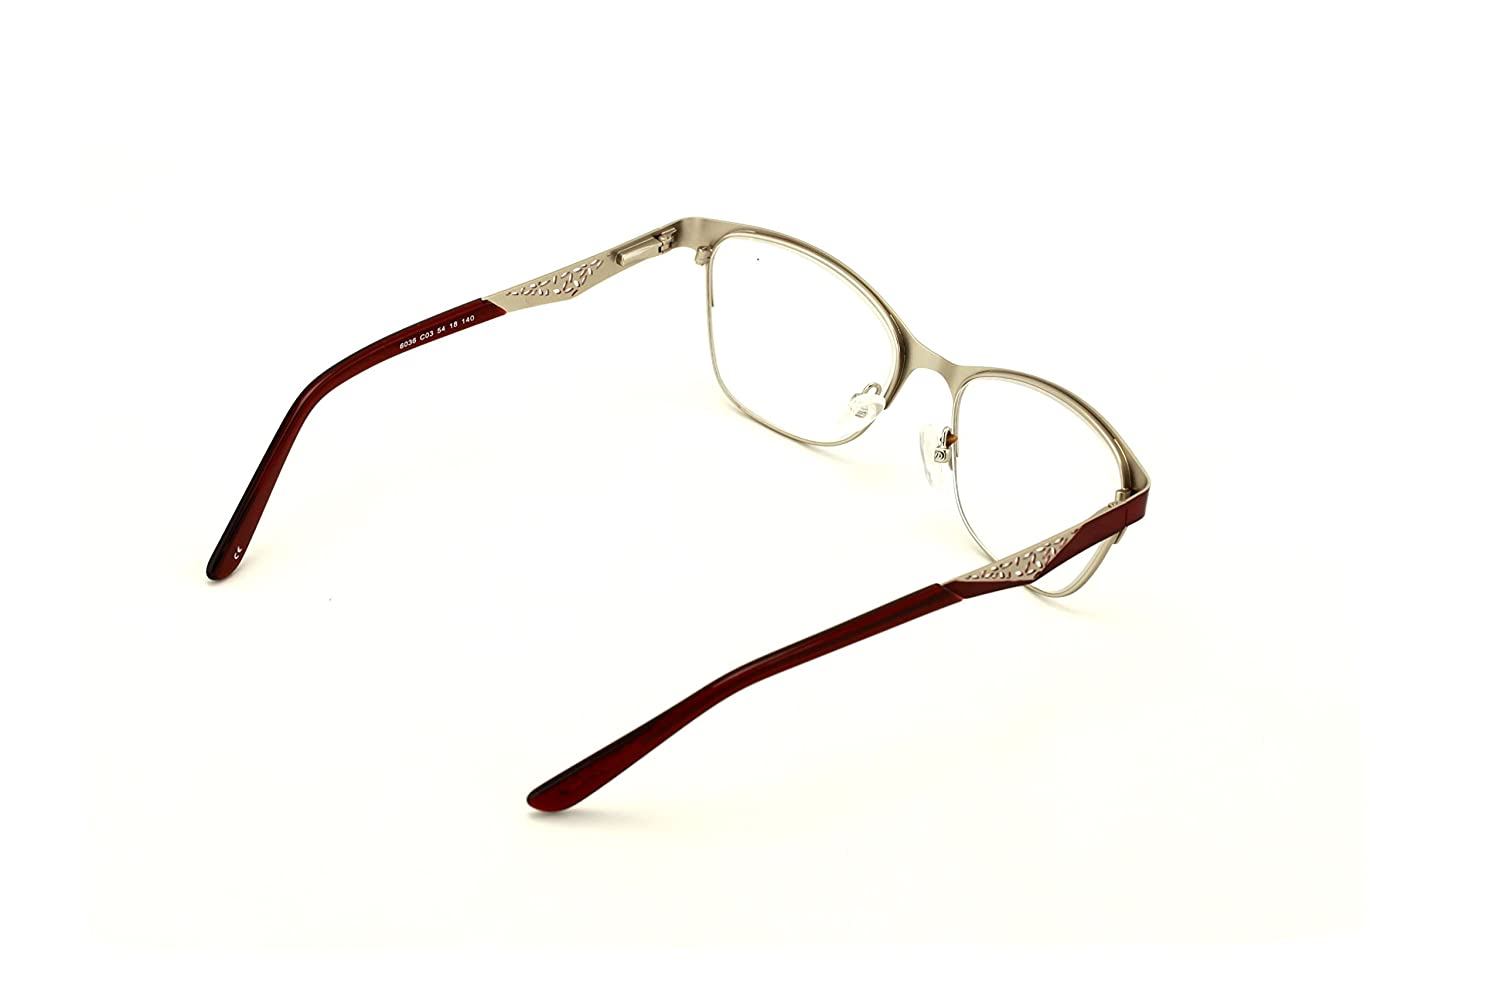 f240cc27ca Amazon.com  Women Fashion Stainless Steel Non-prescription Glasses Frame  Clear Lens Metal Eyeglasses - Wide Fitment (Maroon)  Clothing